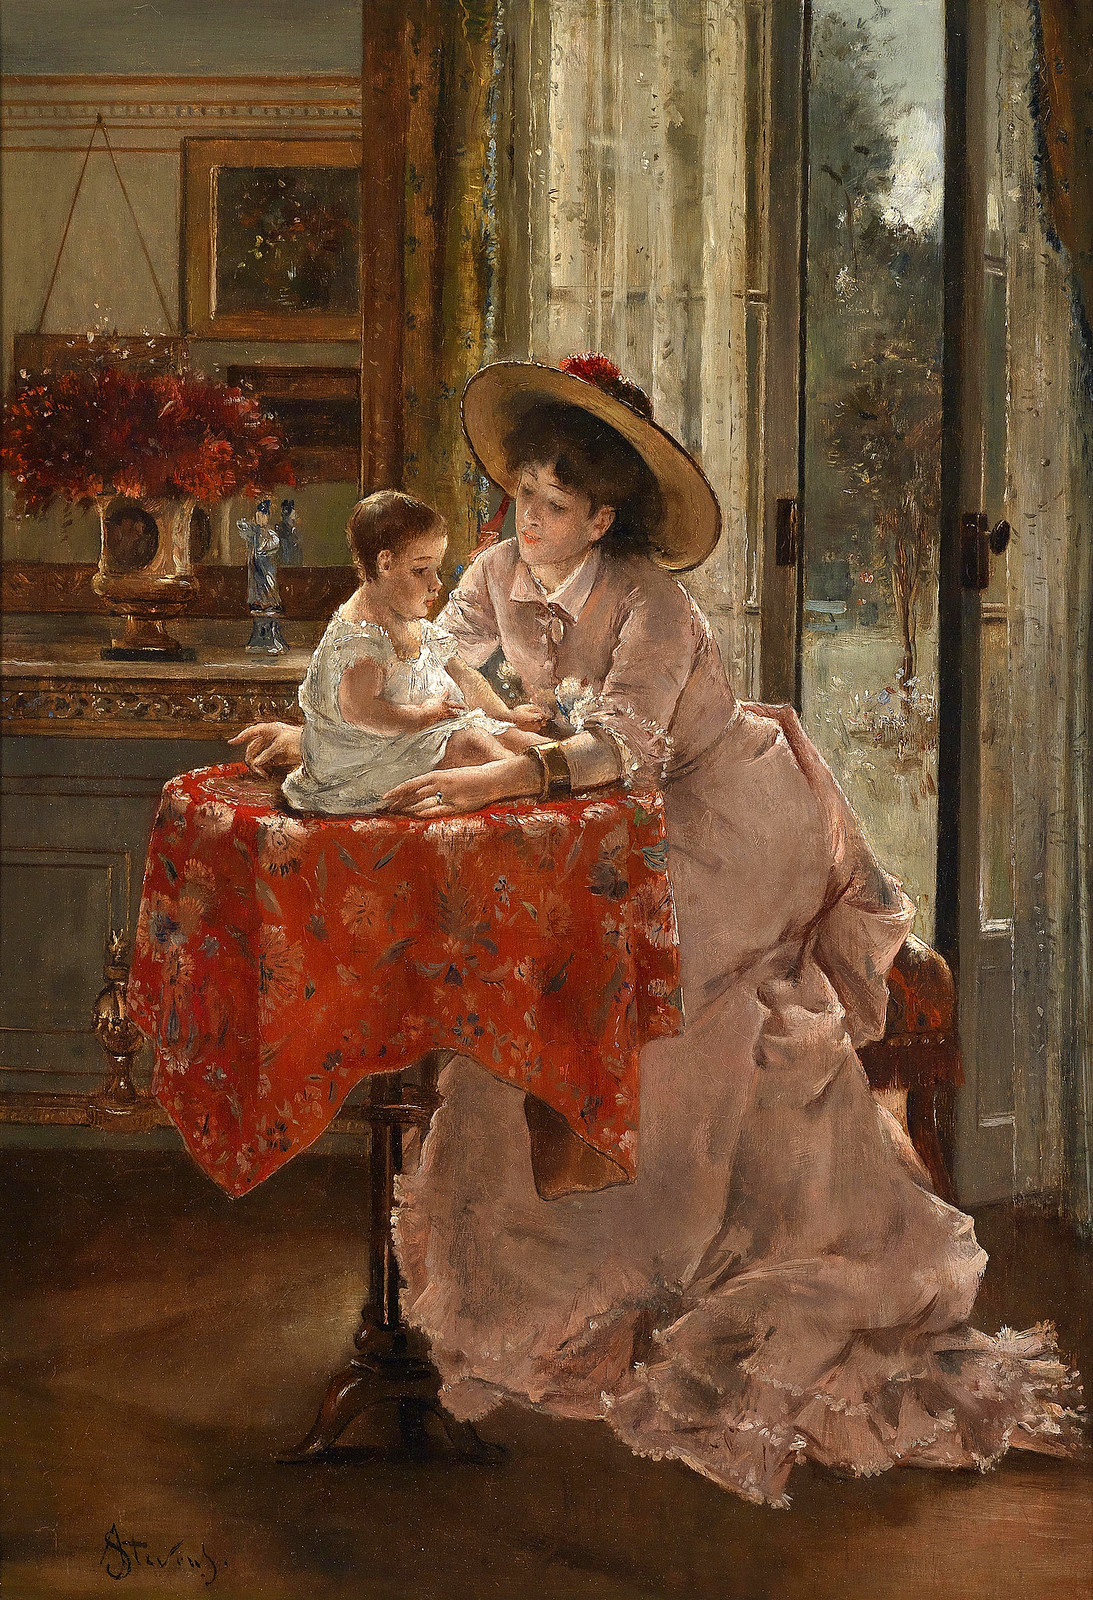 The Happy Mother by Alfred Stevens, 1823-1906